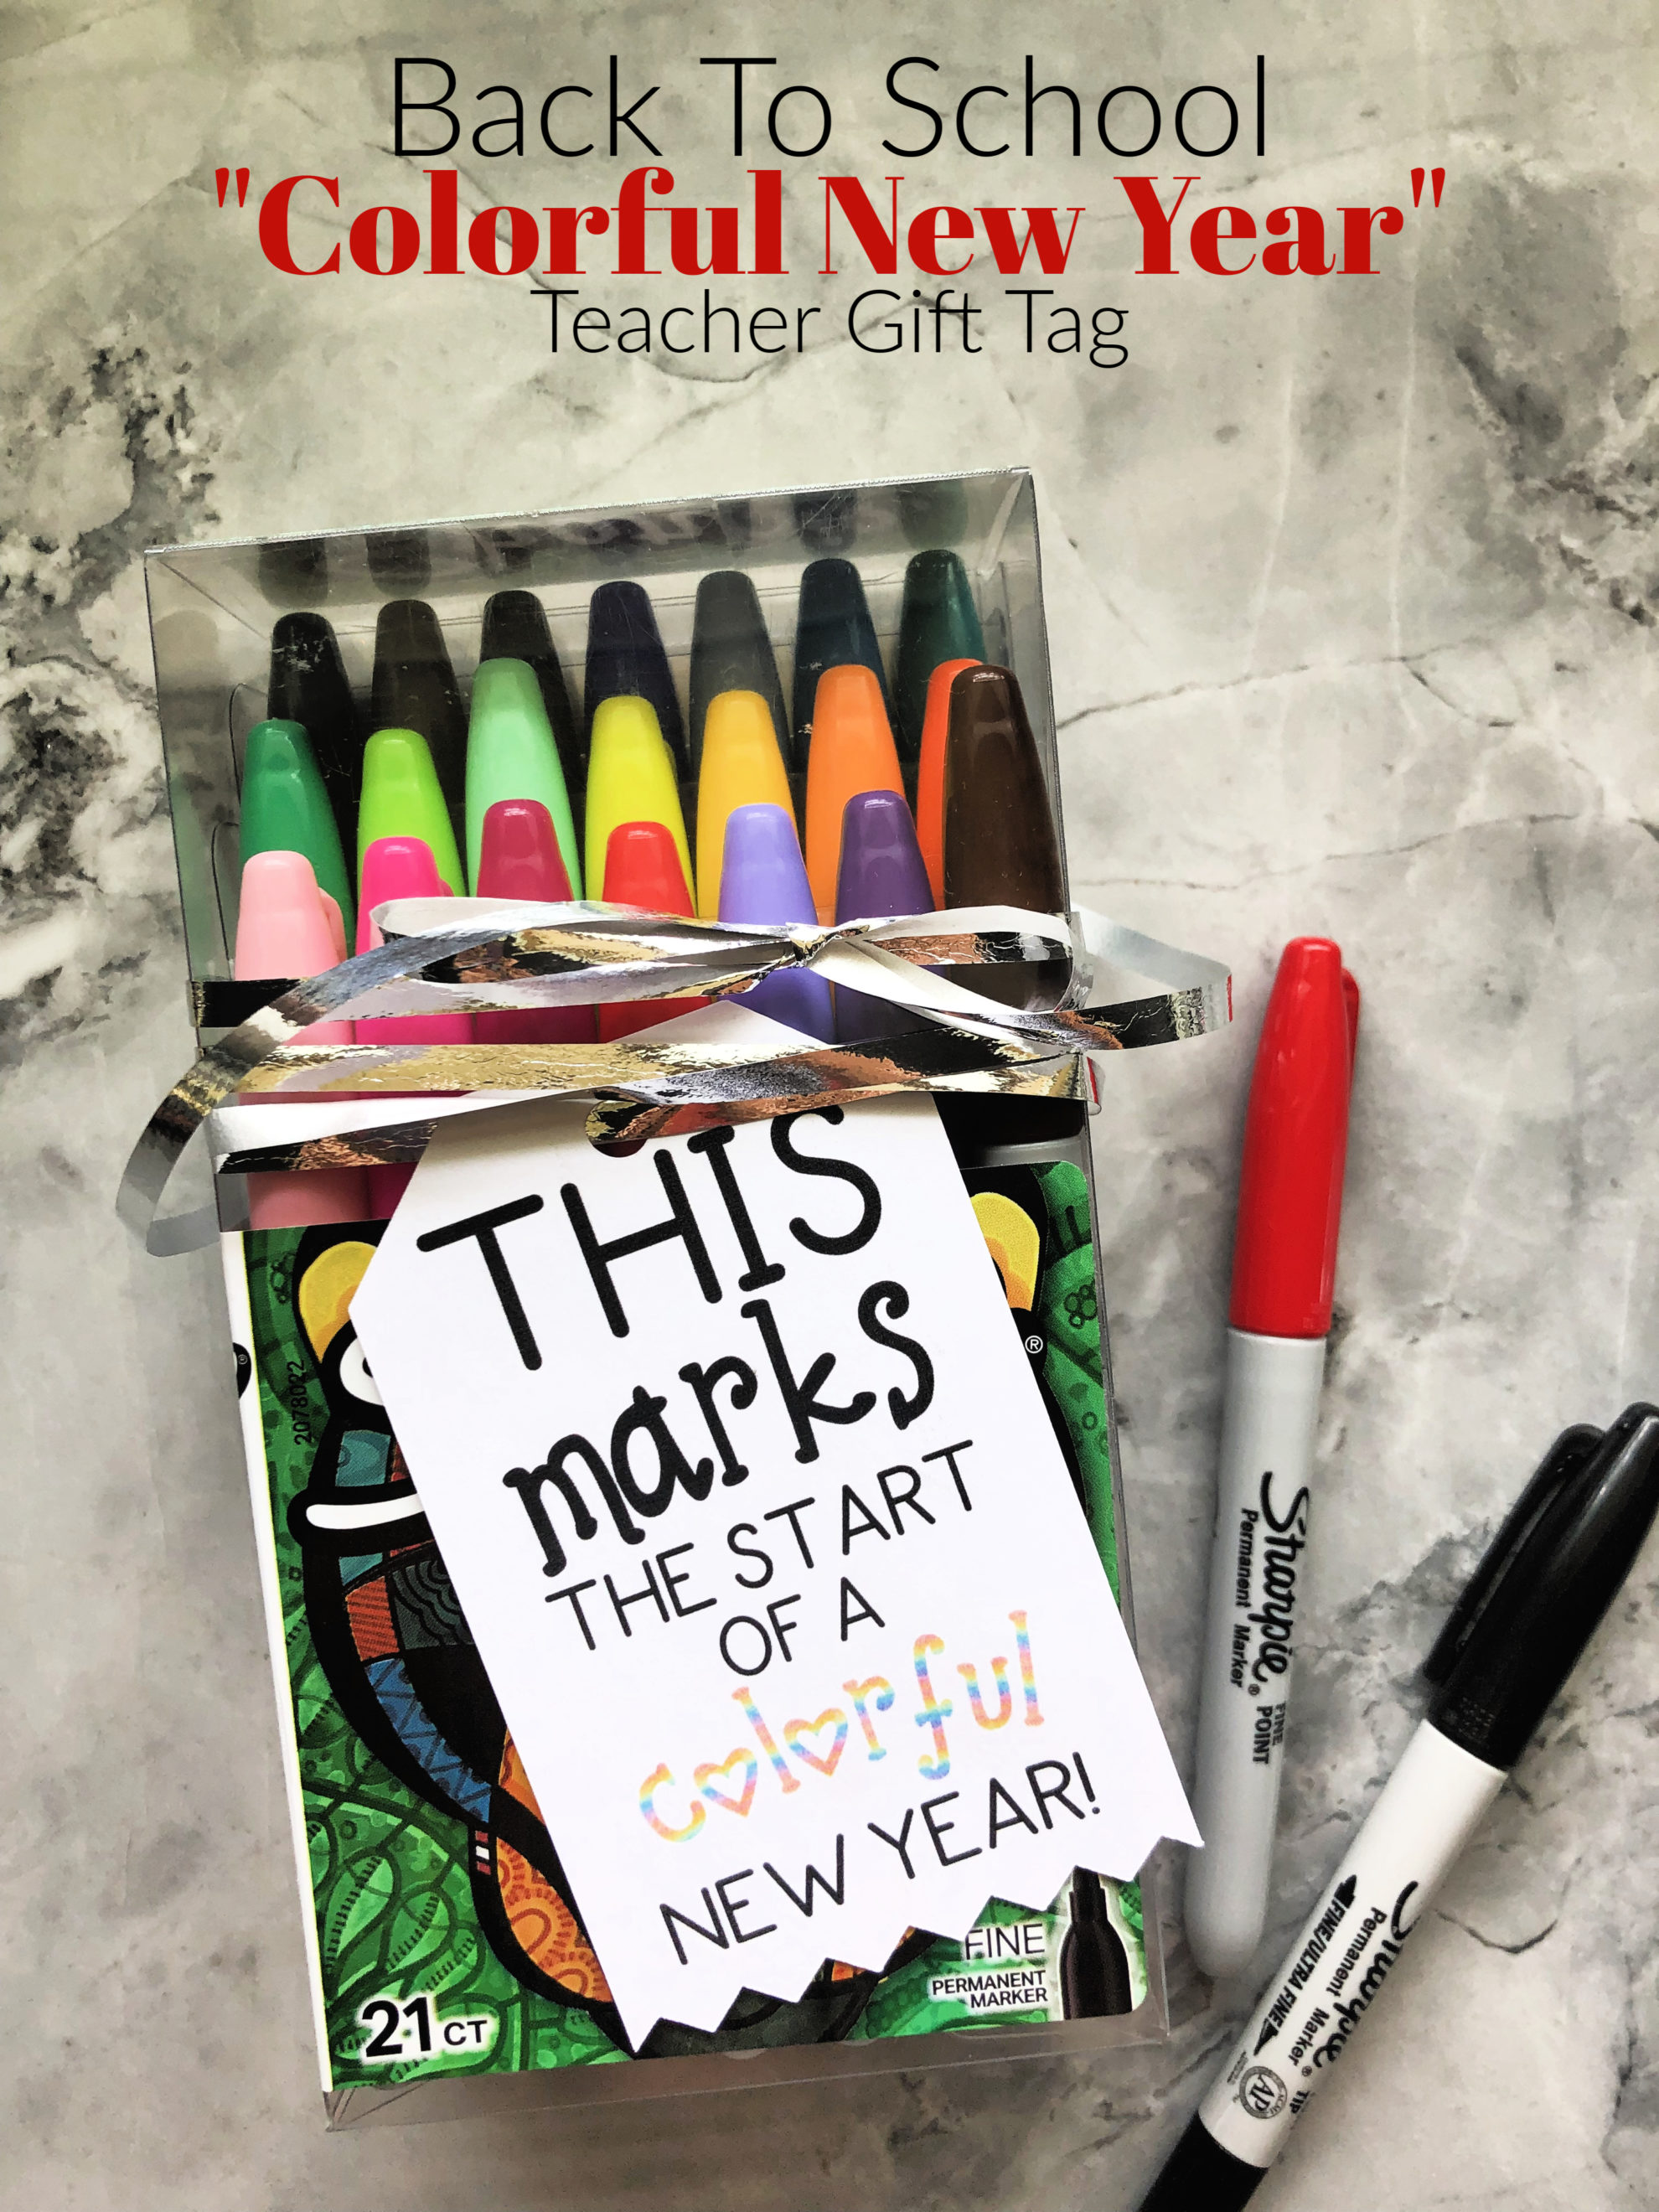 Box of Sharpie markers with a gift tag on it resting on marble countertop with text on image.